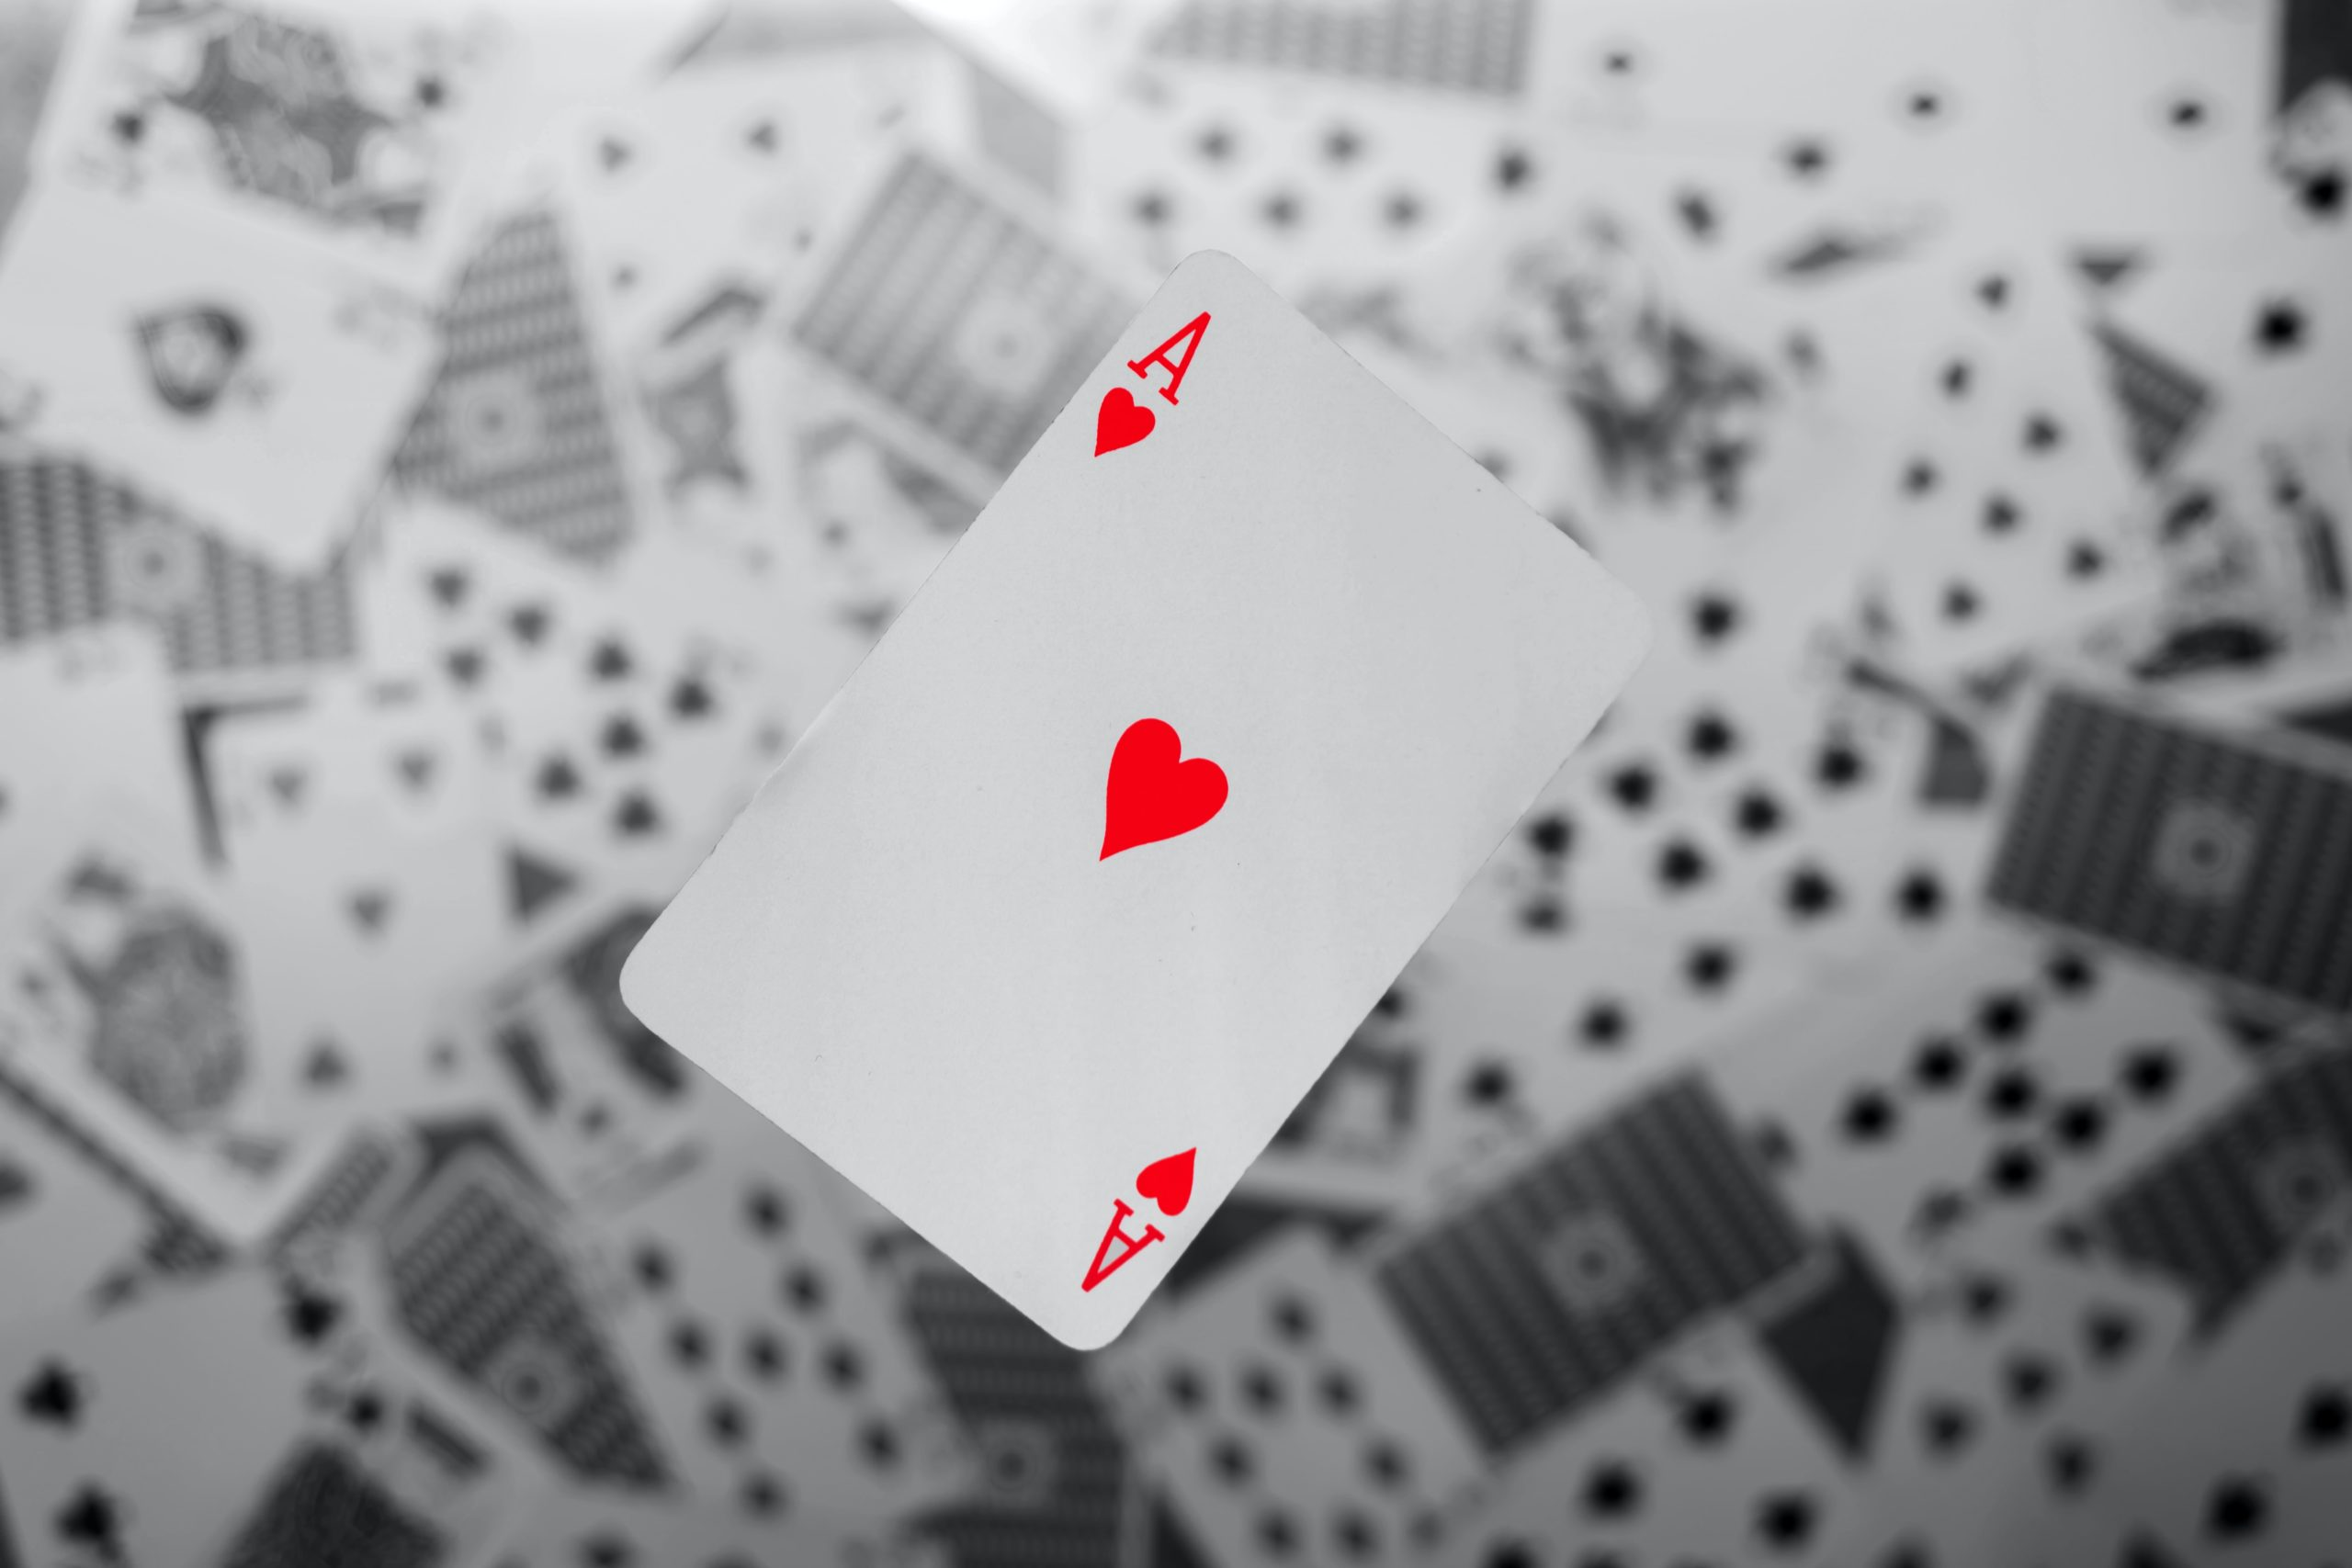 Close up of a playing card with the ace of hearts floating above the rest of the cards scattered below.